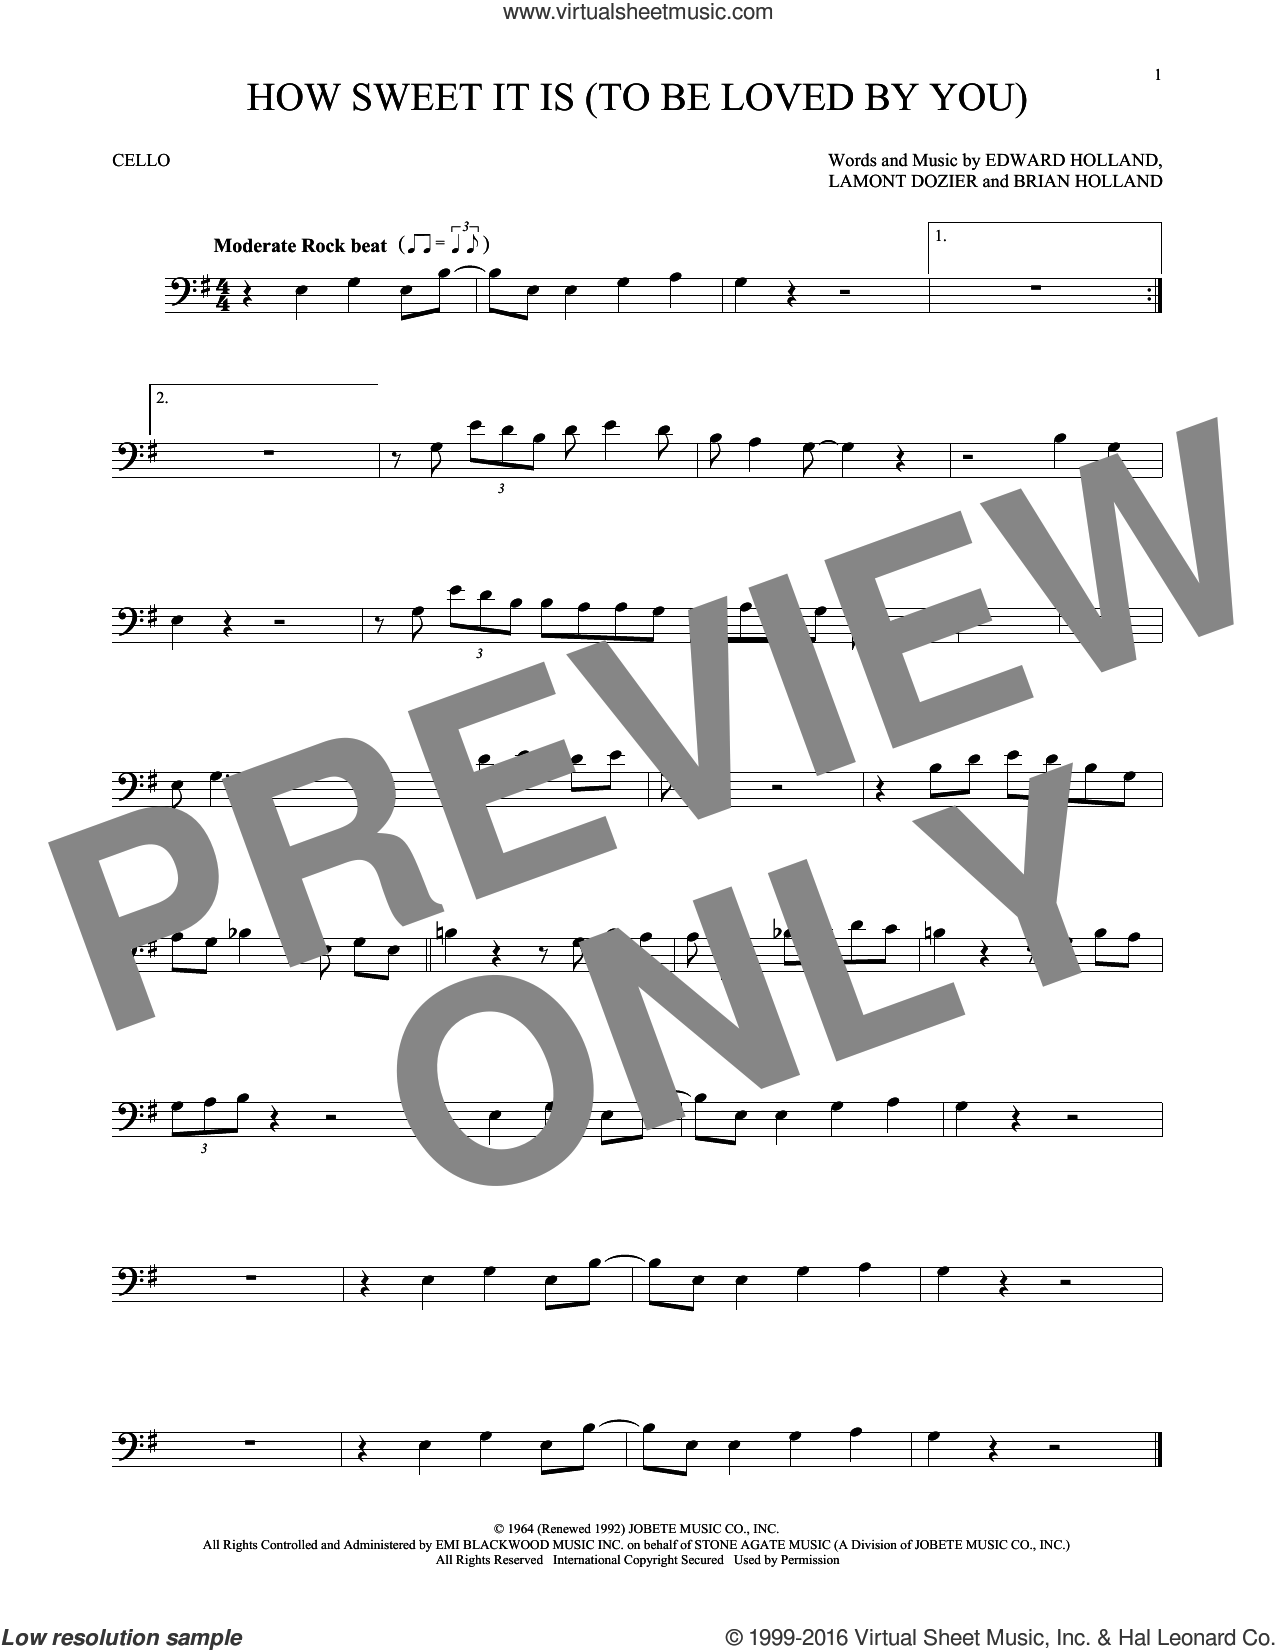 How Sweet It Is (To Be Loved By You) sheet music for cello solo by James Taylor, Marvin Gaye, Brian Holland, Eddie Holland and Lamont Dozier, intermediate cello. Score Image Preview.